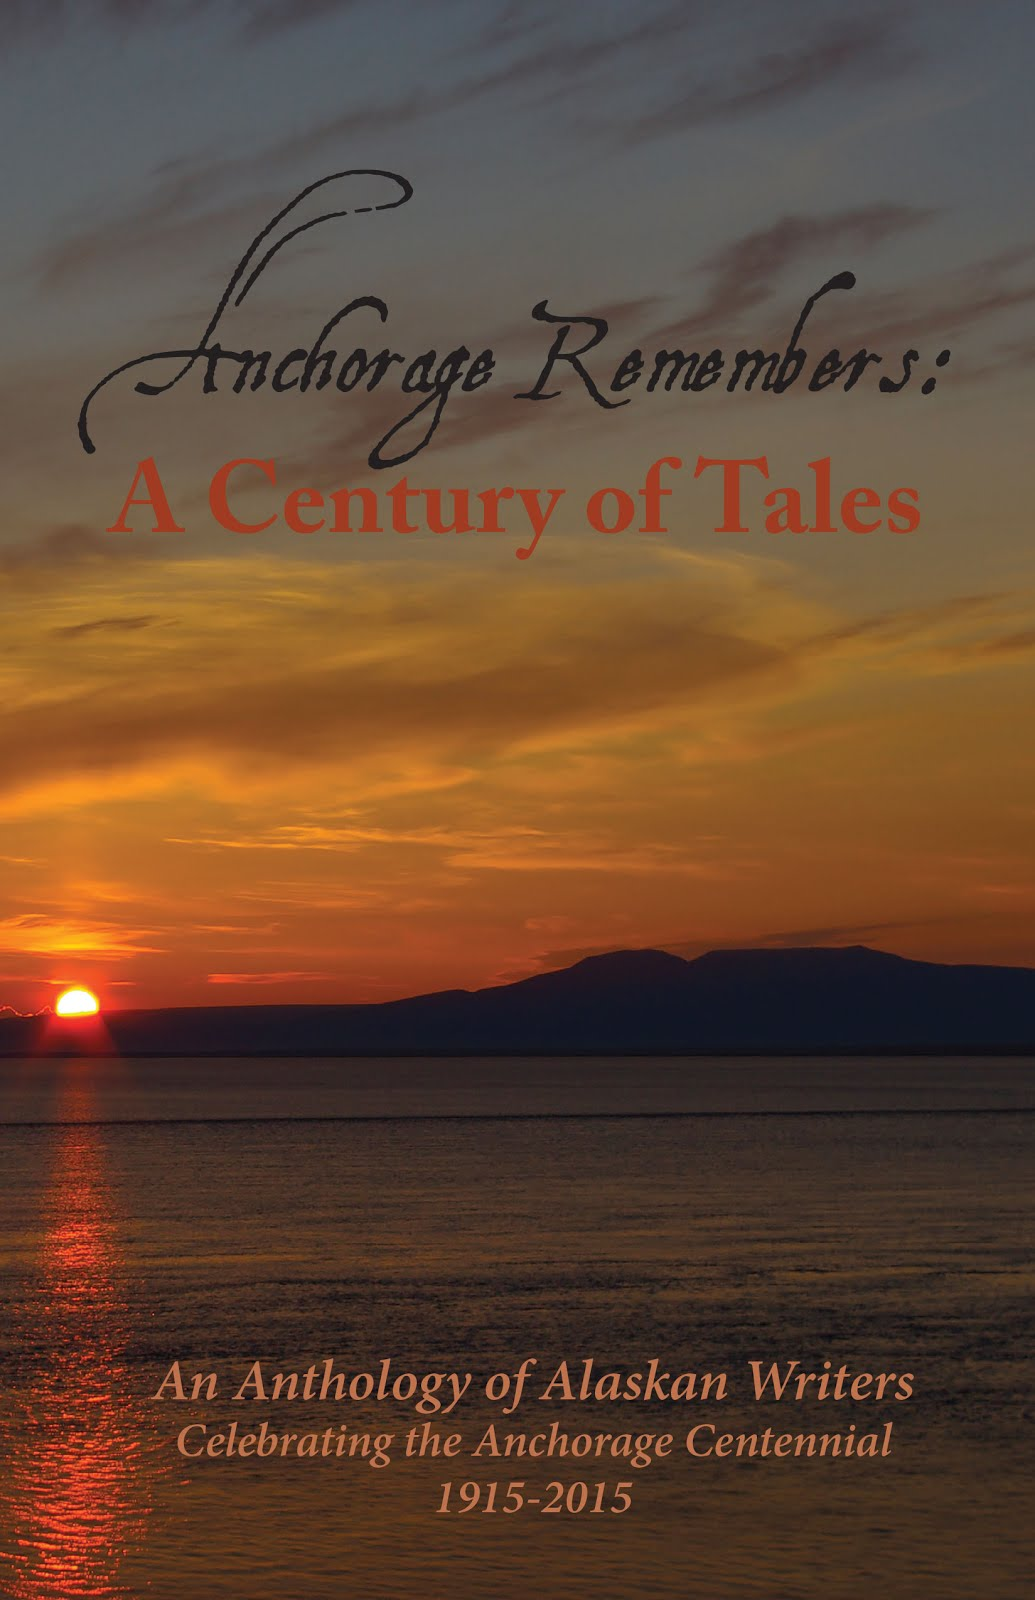 Get Your Copy of Anchorage Remembers!